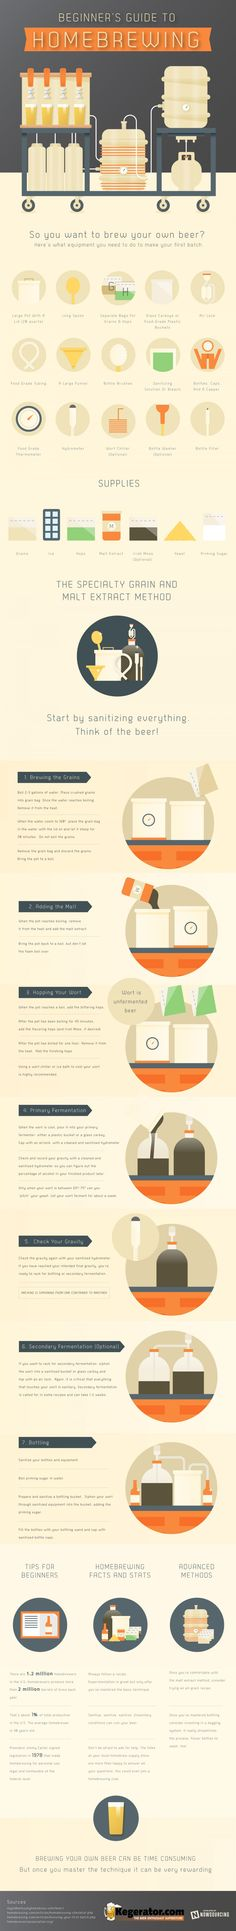 Beginner's Guide To Home Brewing Infographic